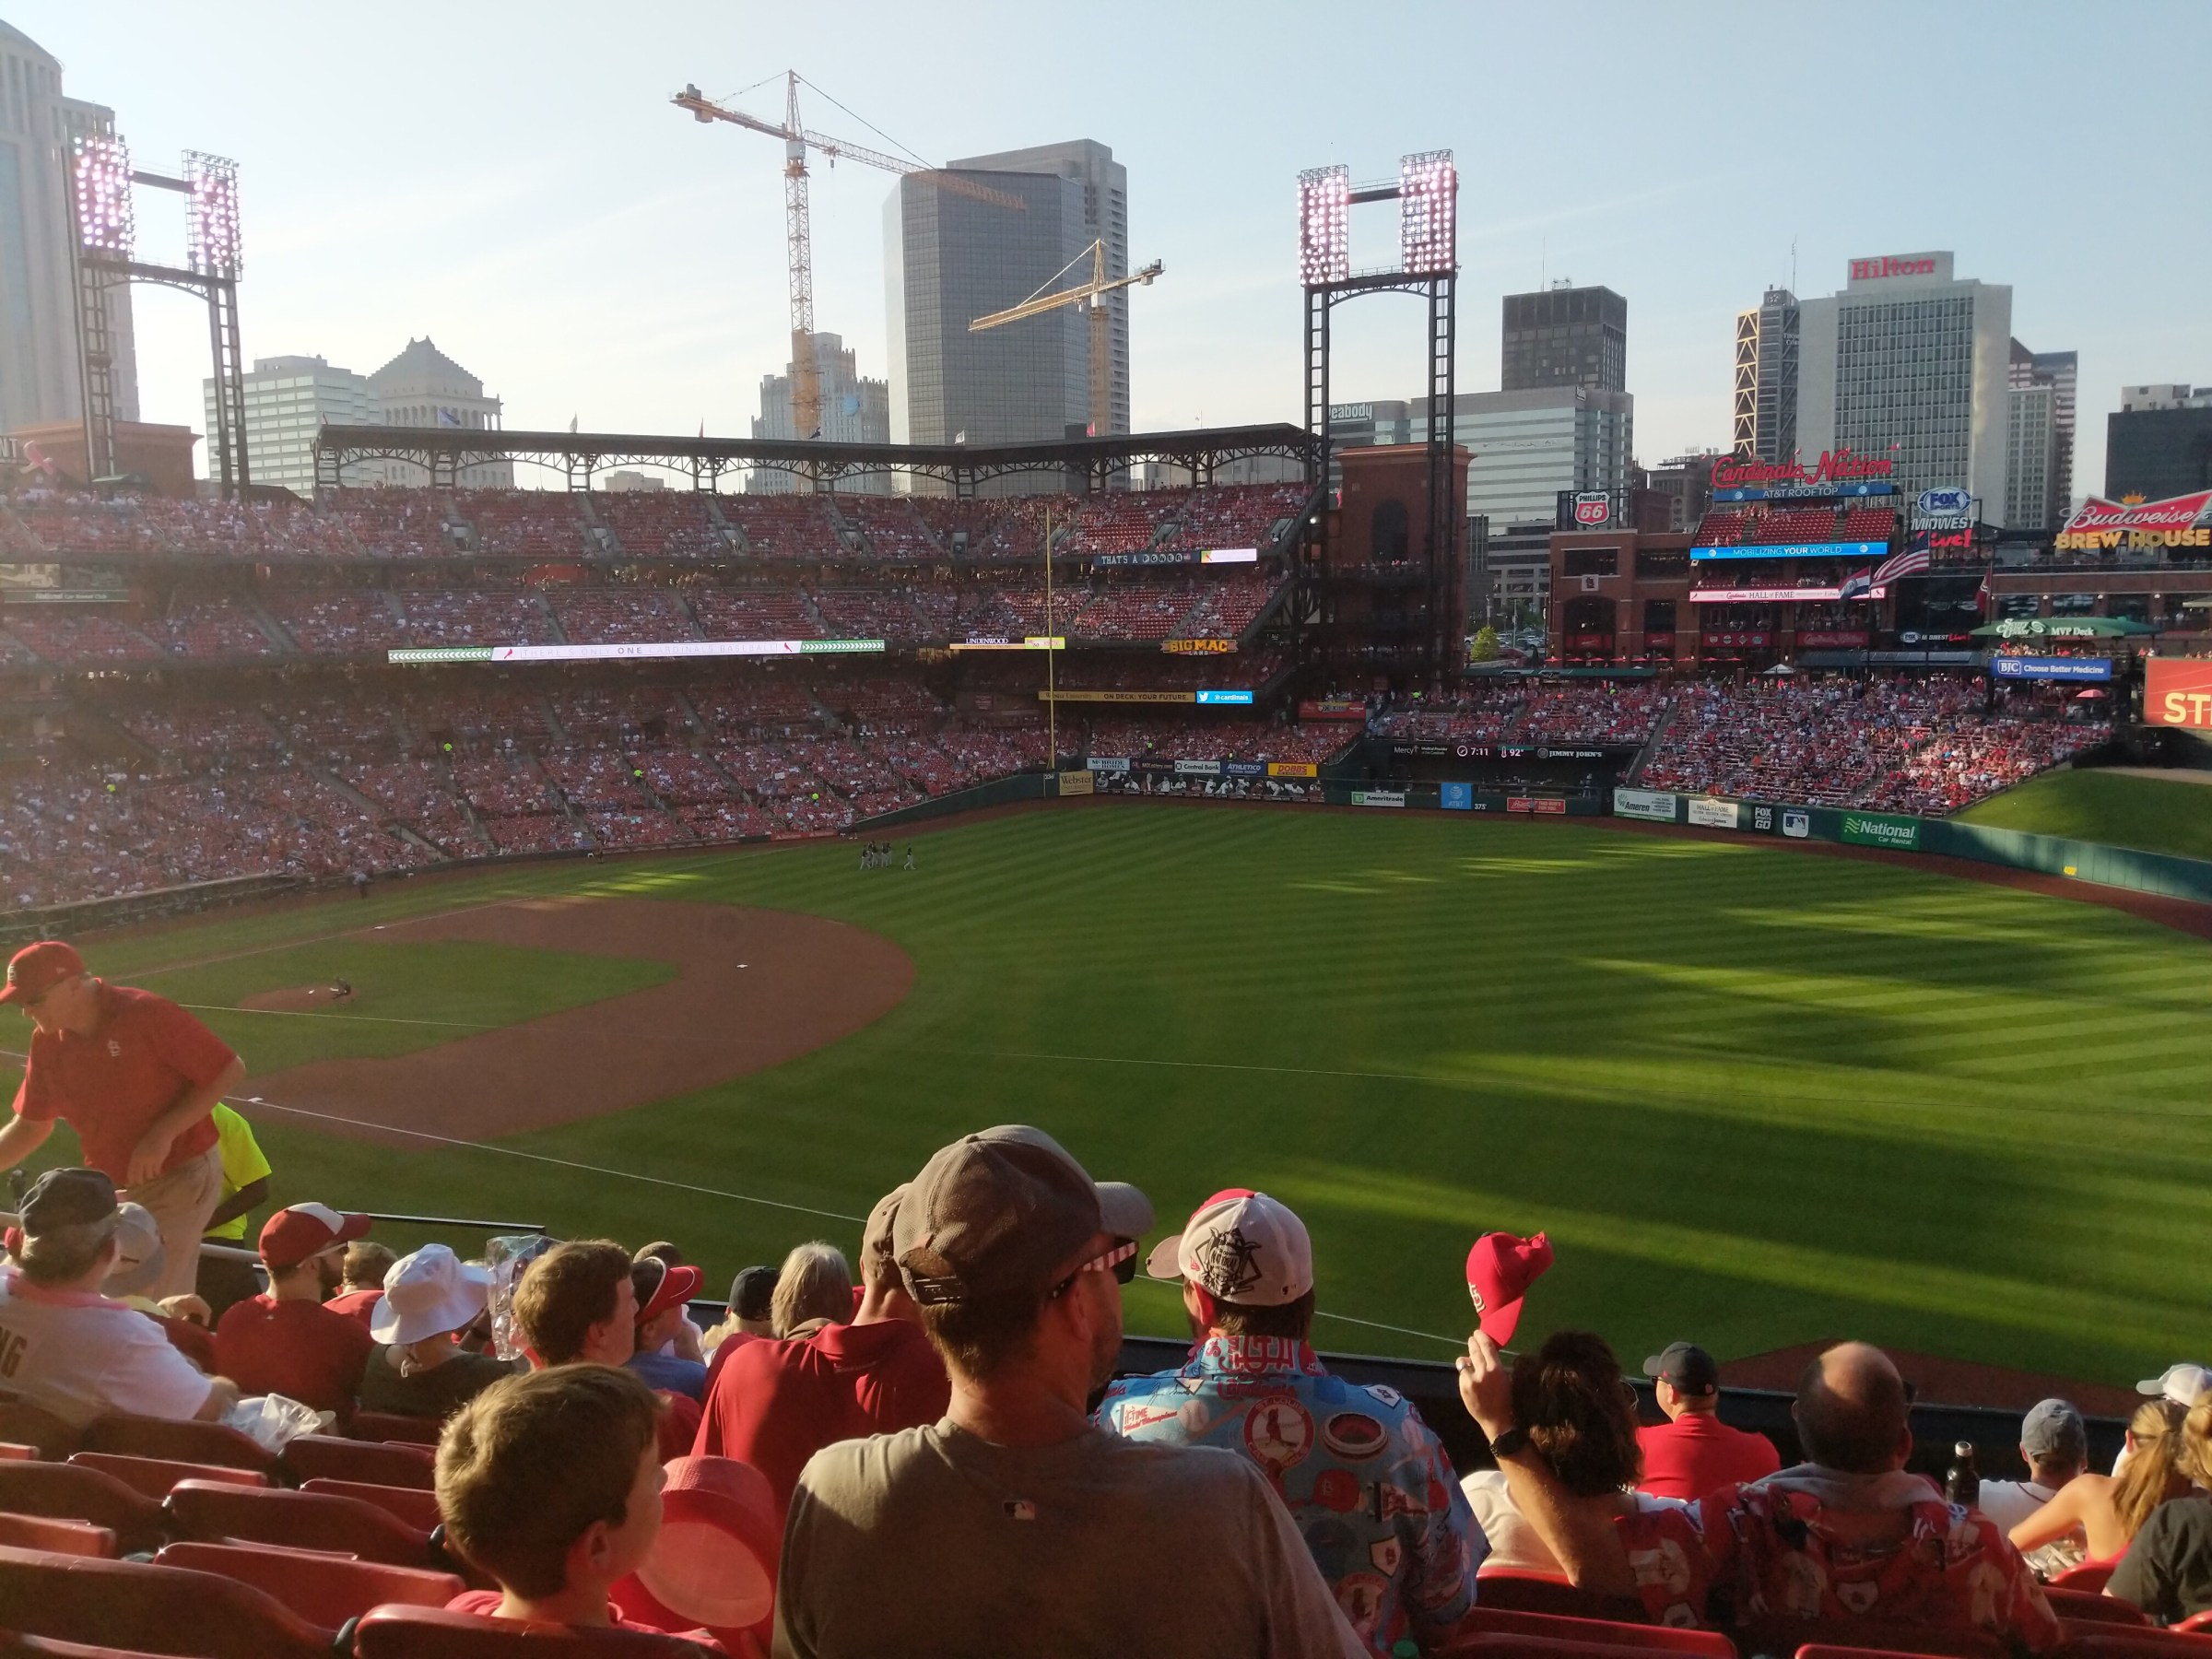 Photo taken from the stands showing a baseball field, crowded stands, and high-rise buildings in the background.